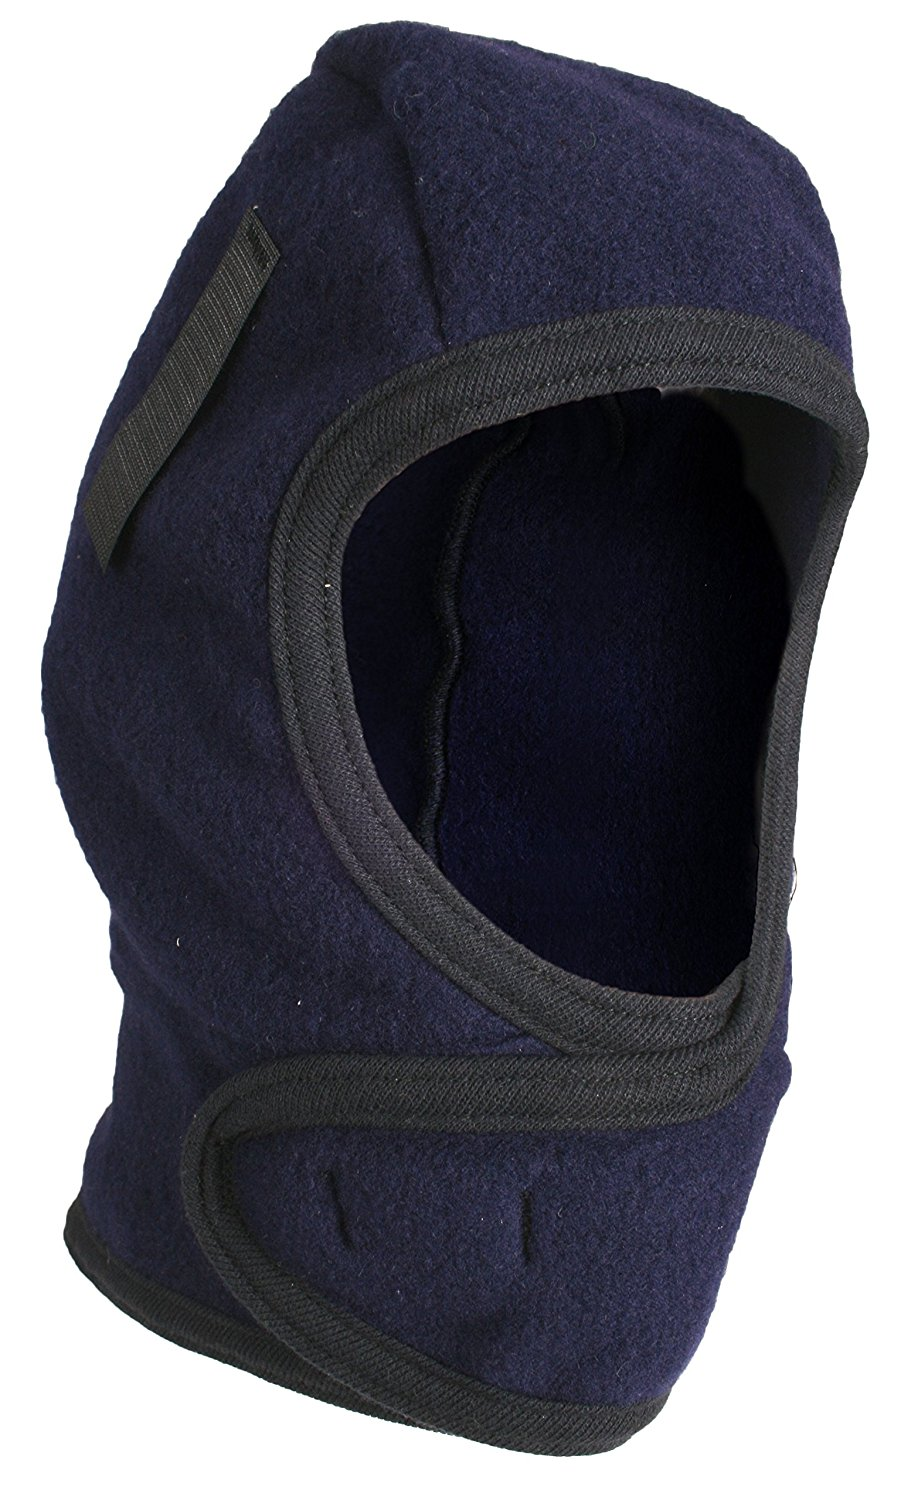 National Safety Apparel H74FL10 Nomex Fleece Winter Liner, Nomex Fleece, One Size, Navy